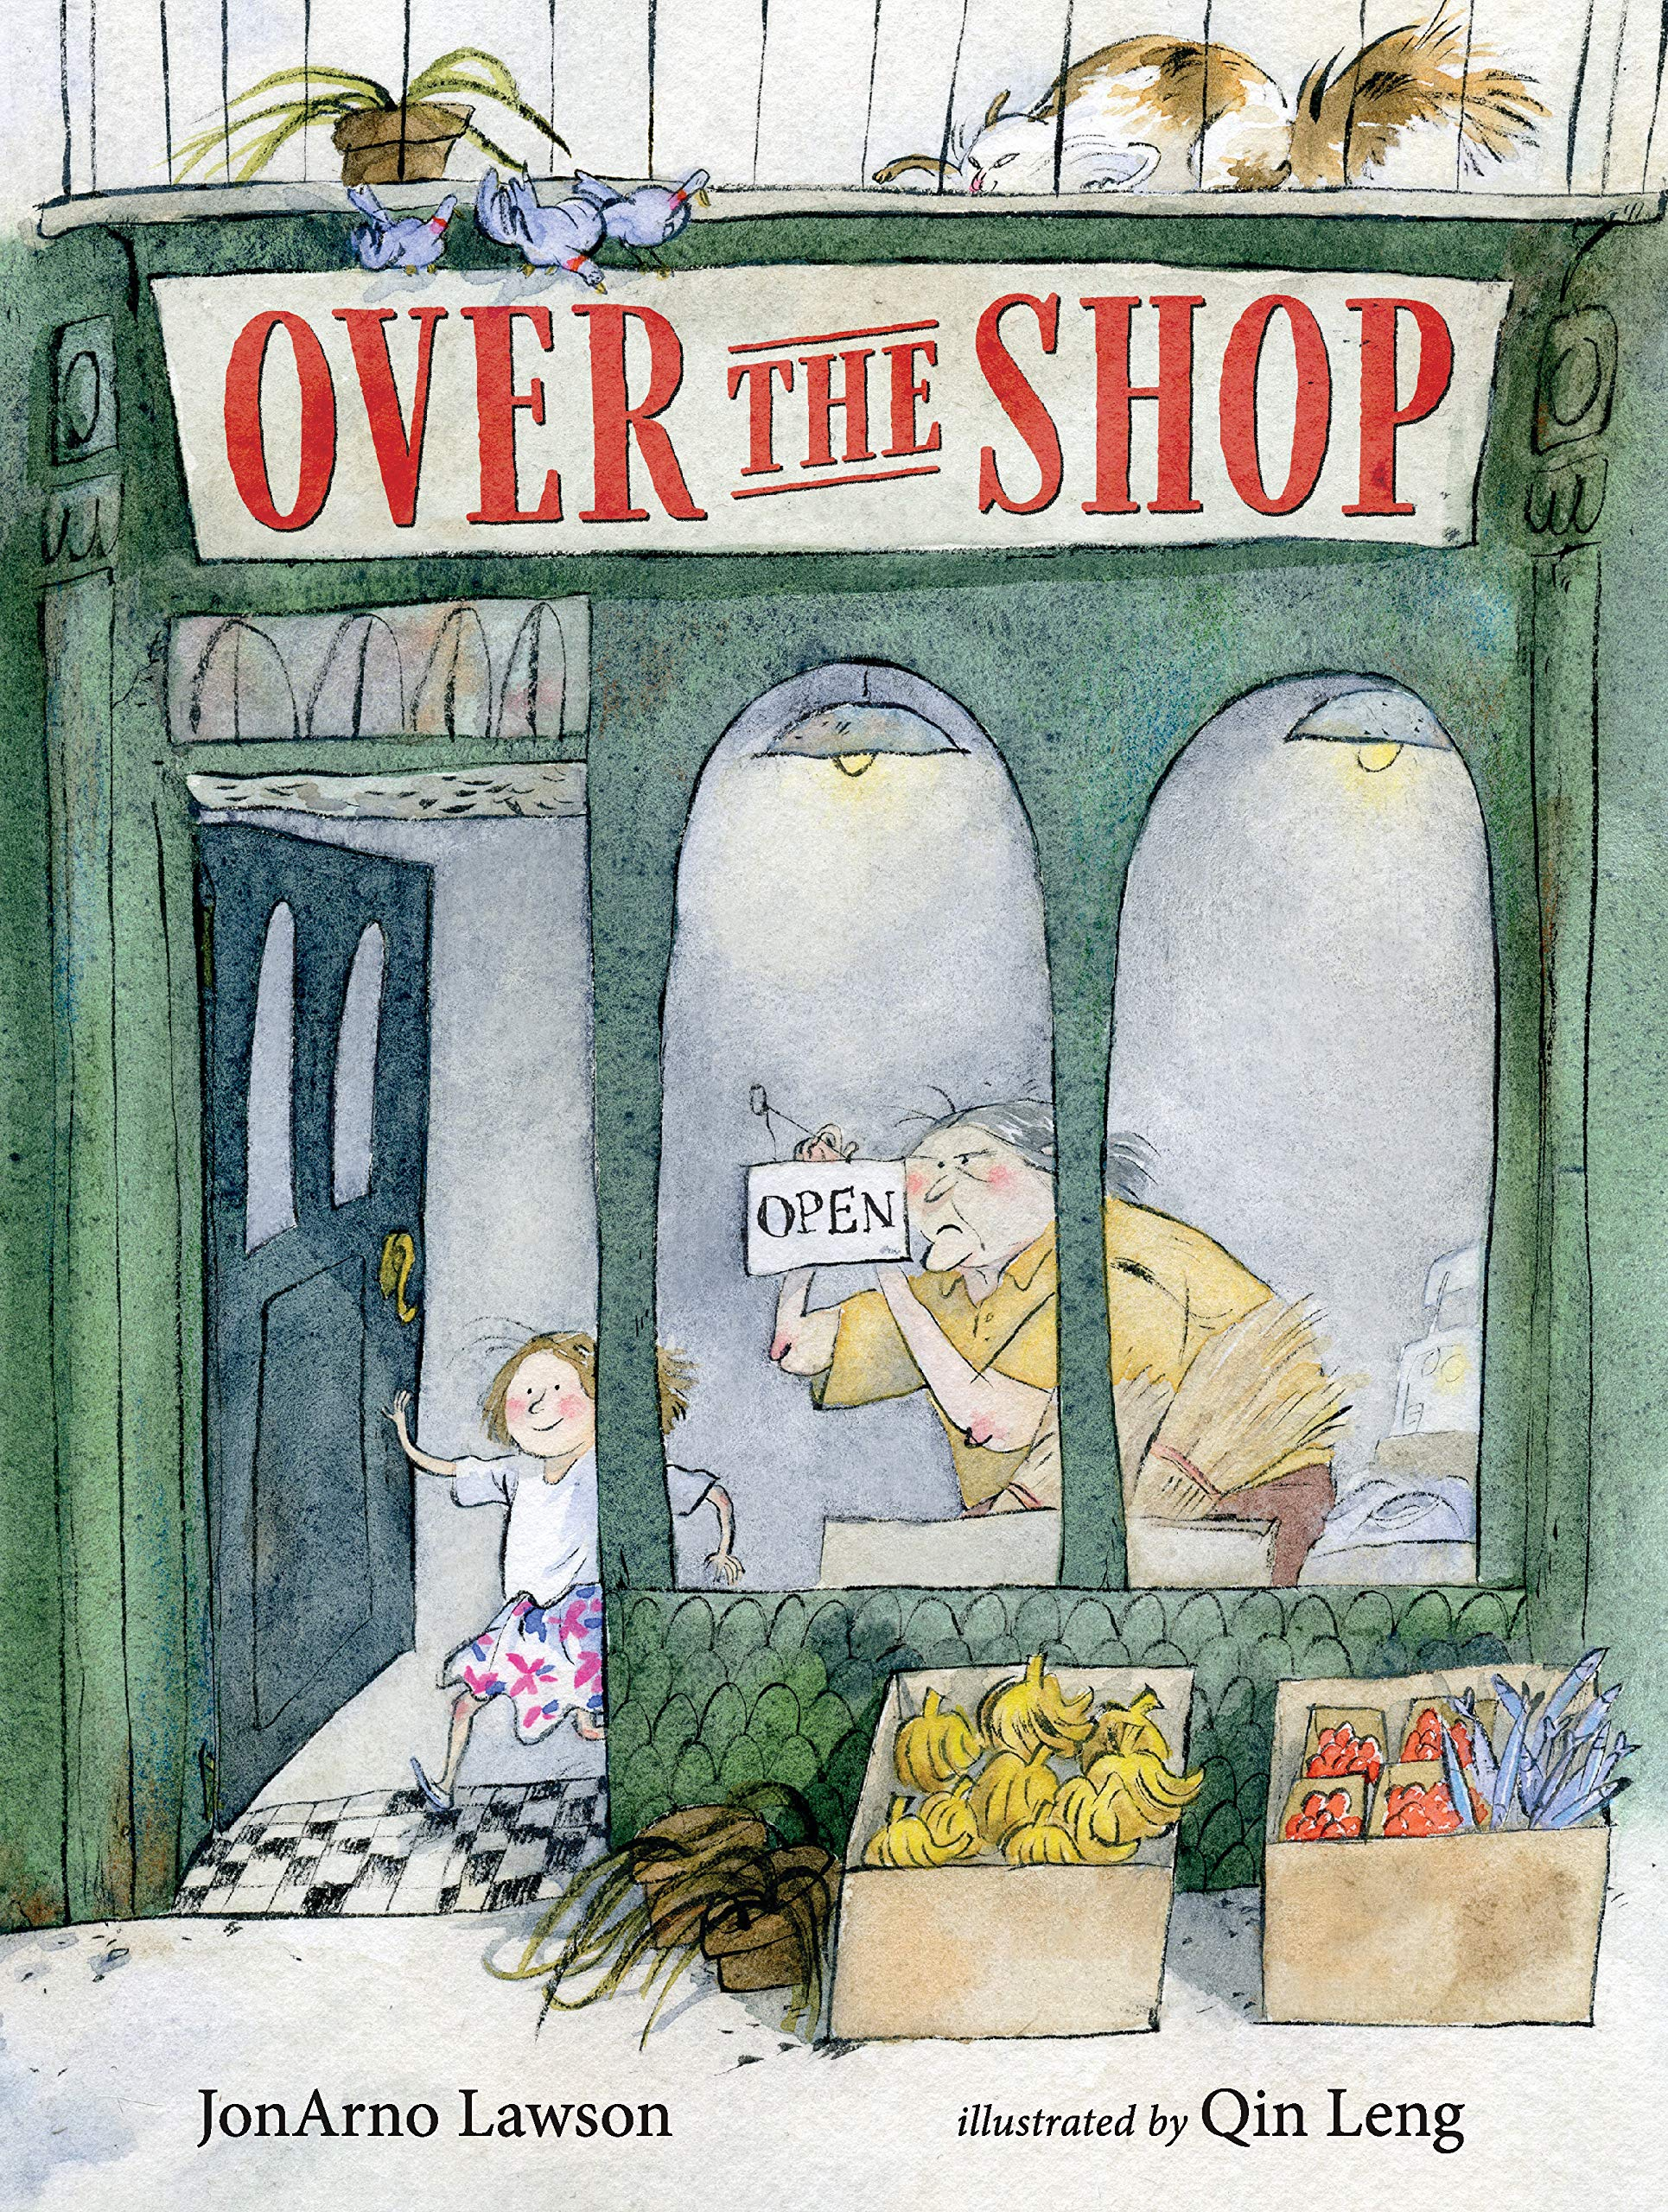 Over the Shop: Lawson, Jonarno, Leng, Qin: 9781536201475: Amazon.com: Books